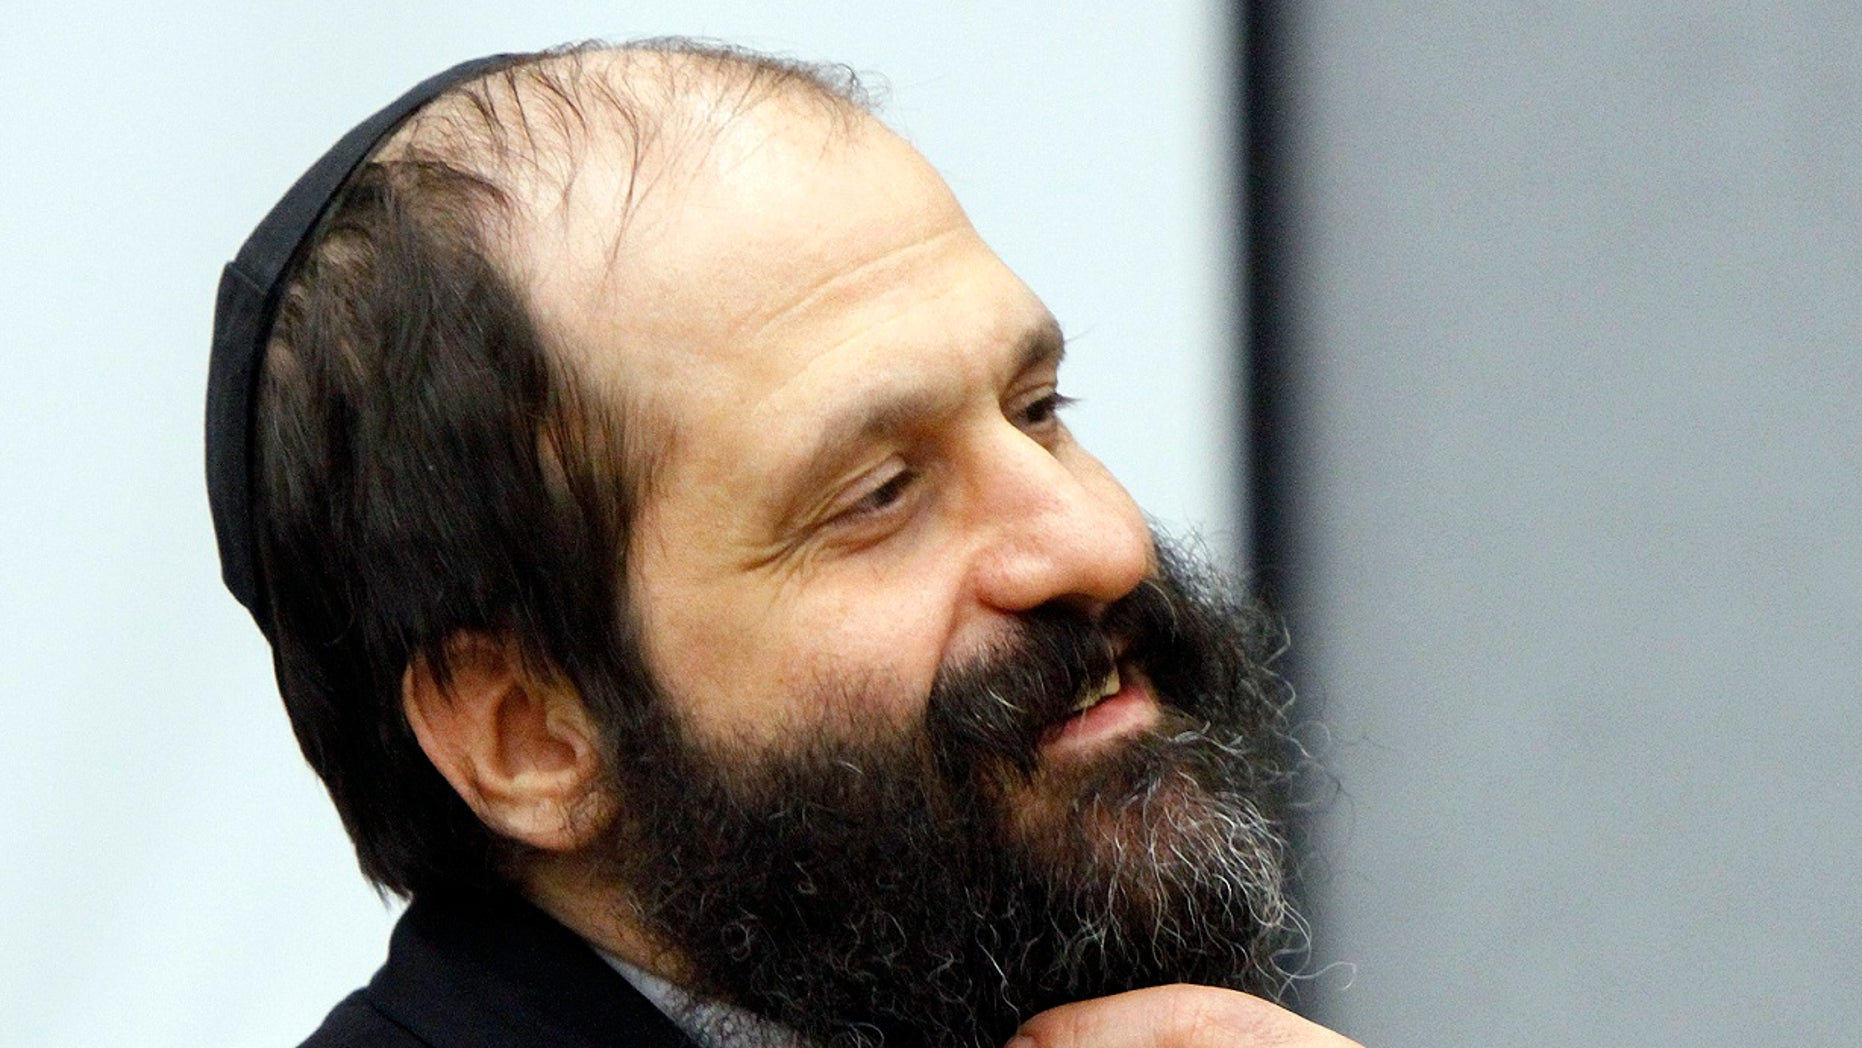 Sholom Rubashkin was facing a 27-year sentence that members of both parties said was too long. President Donald Trump commuted his sentence Wednesday, in his first-ever use of the power.